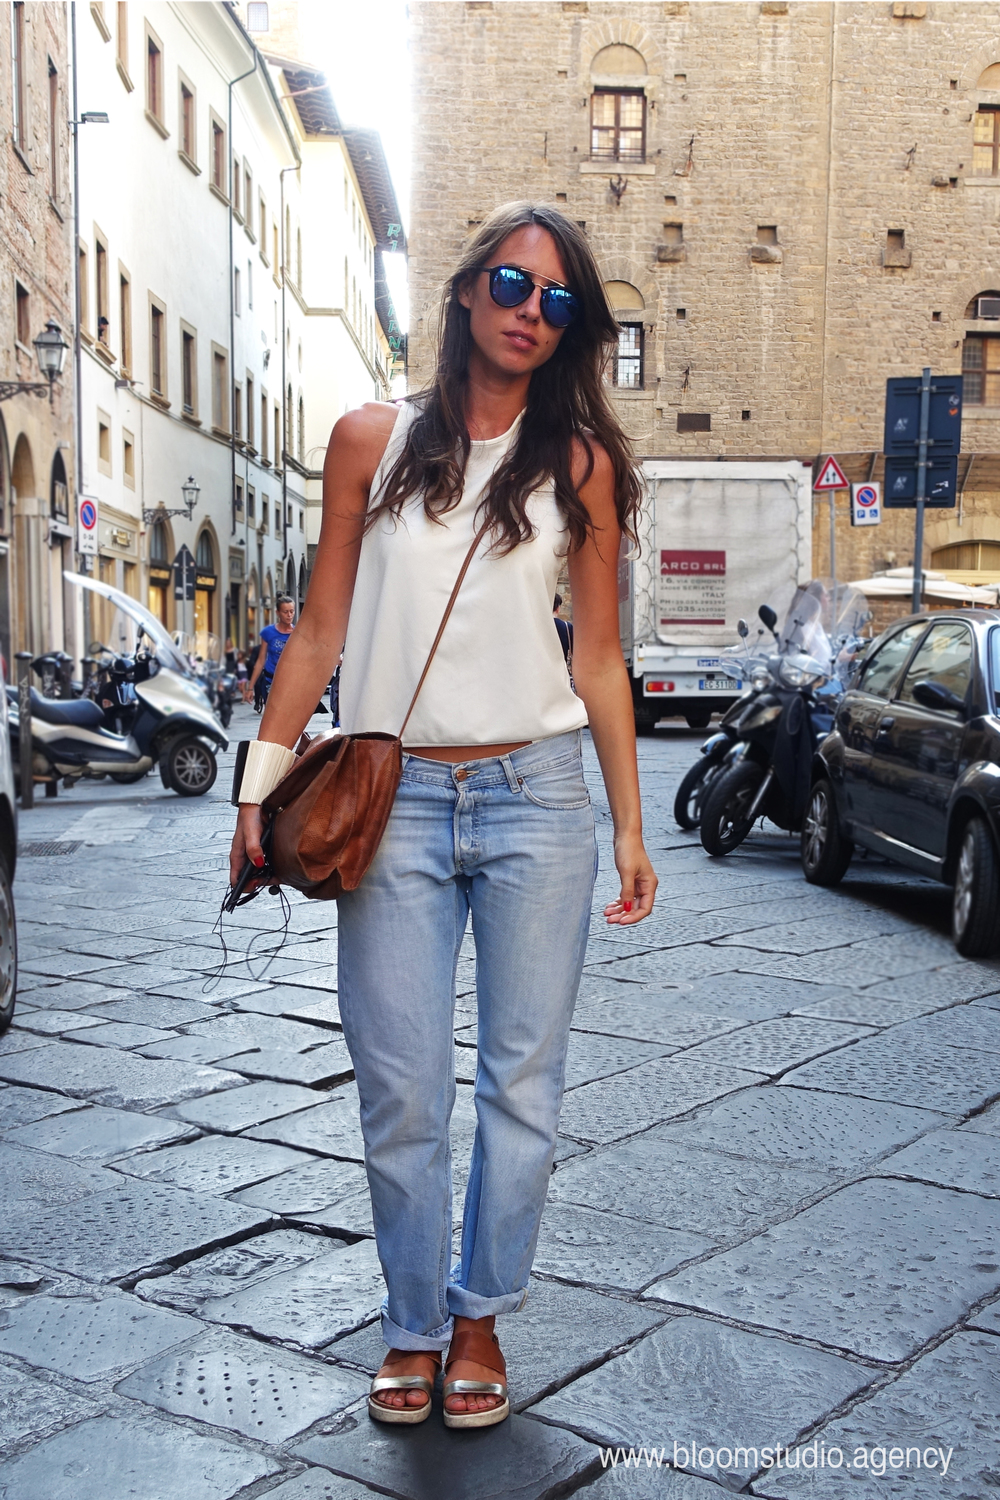 Paola from Florence chooses the comfort of boyfriend jeans.